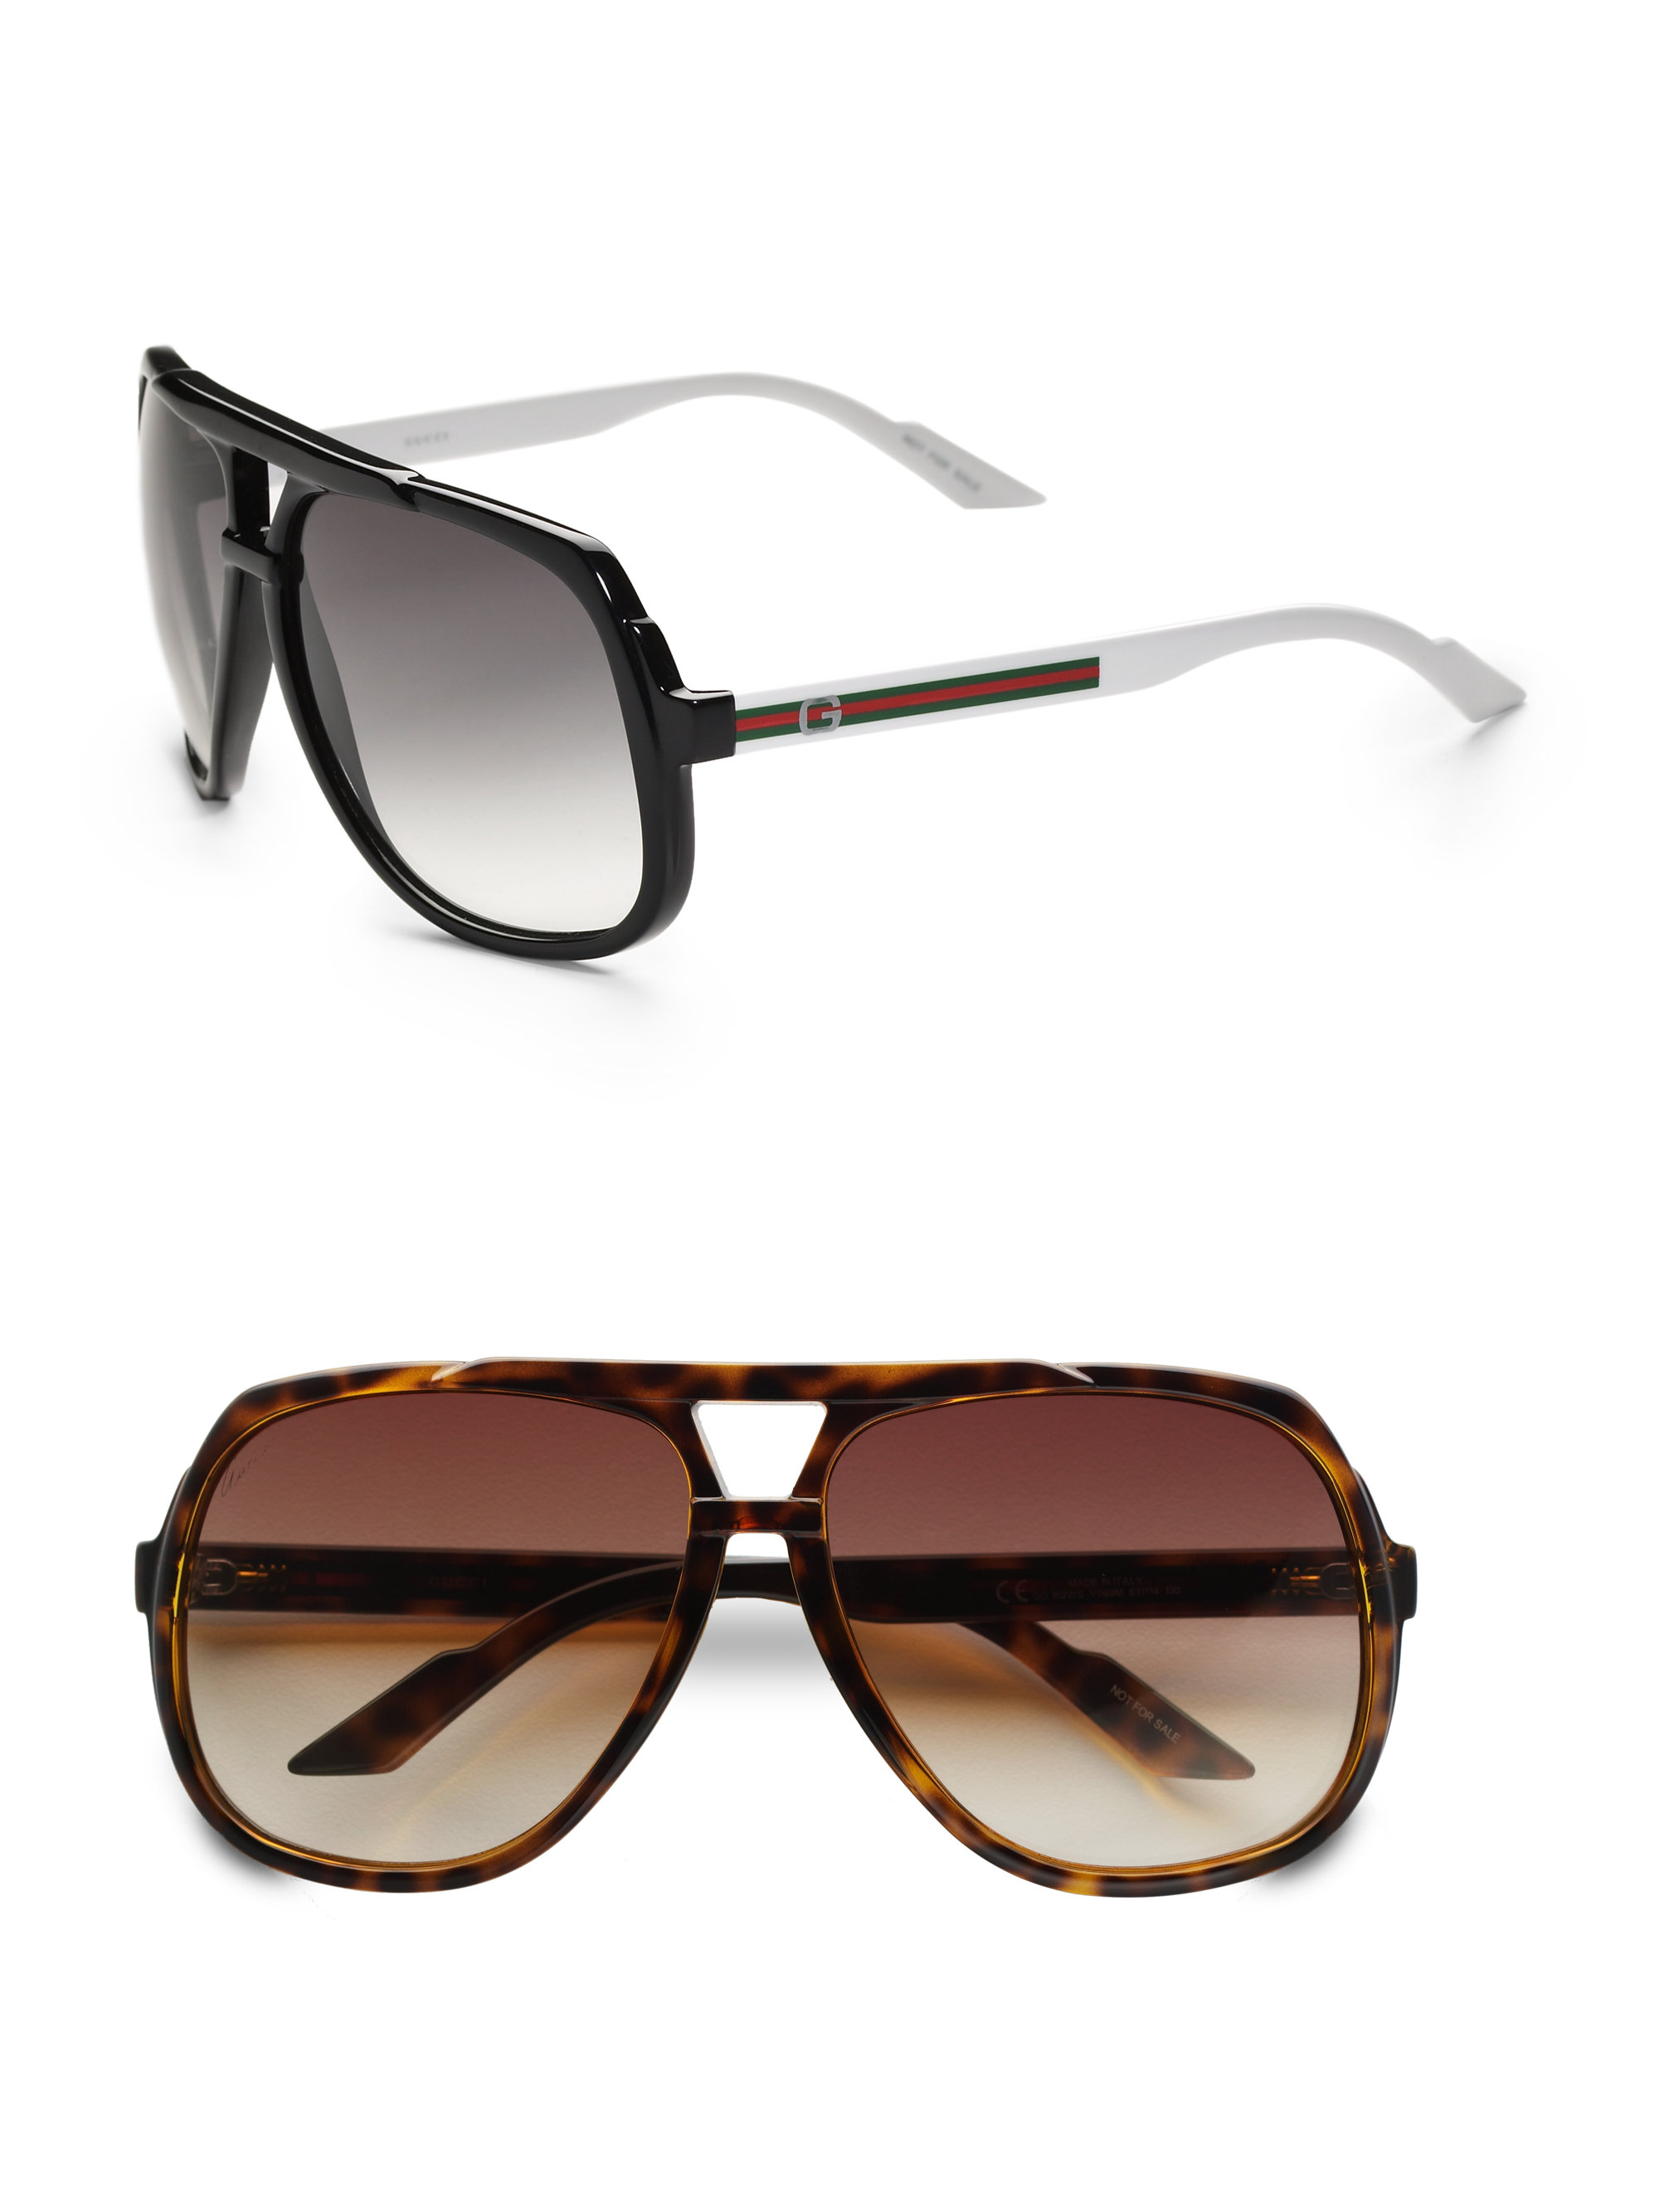 Gucci Sunglasses With Logo On Lens  gucci plastic aviator sunglasses in brown for men lyst